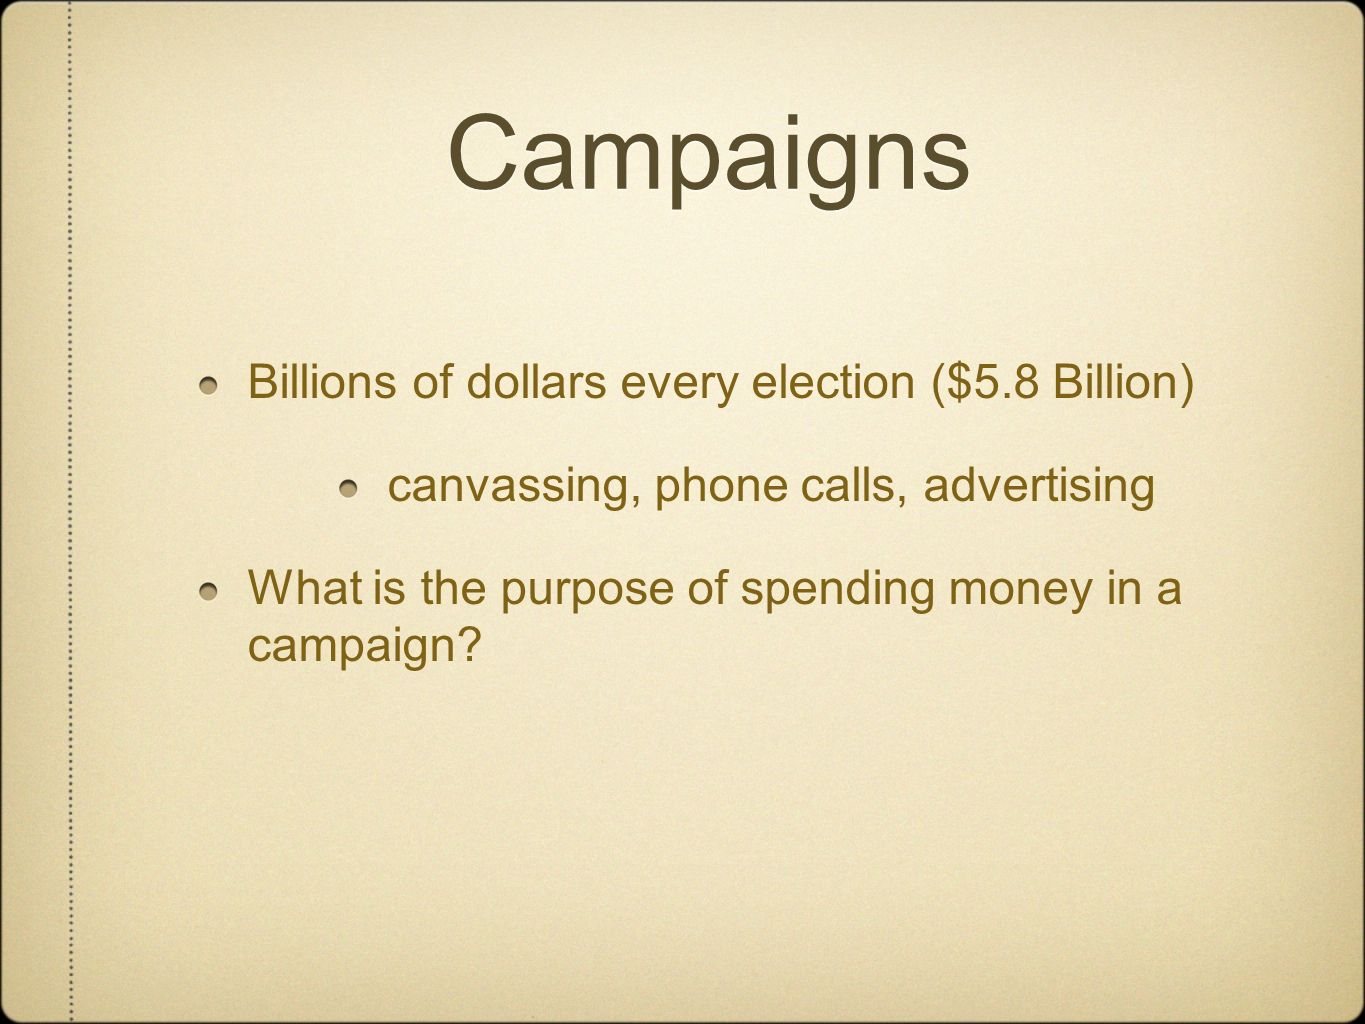 Campaigns Billions of dollars every election ($5.8 Billion) canvassing, phone calls, advertising What is the purpose of spending money in a campaign?